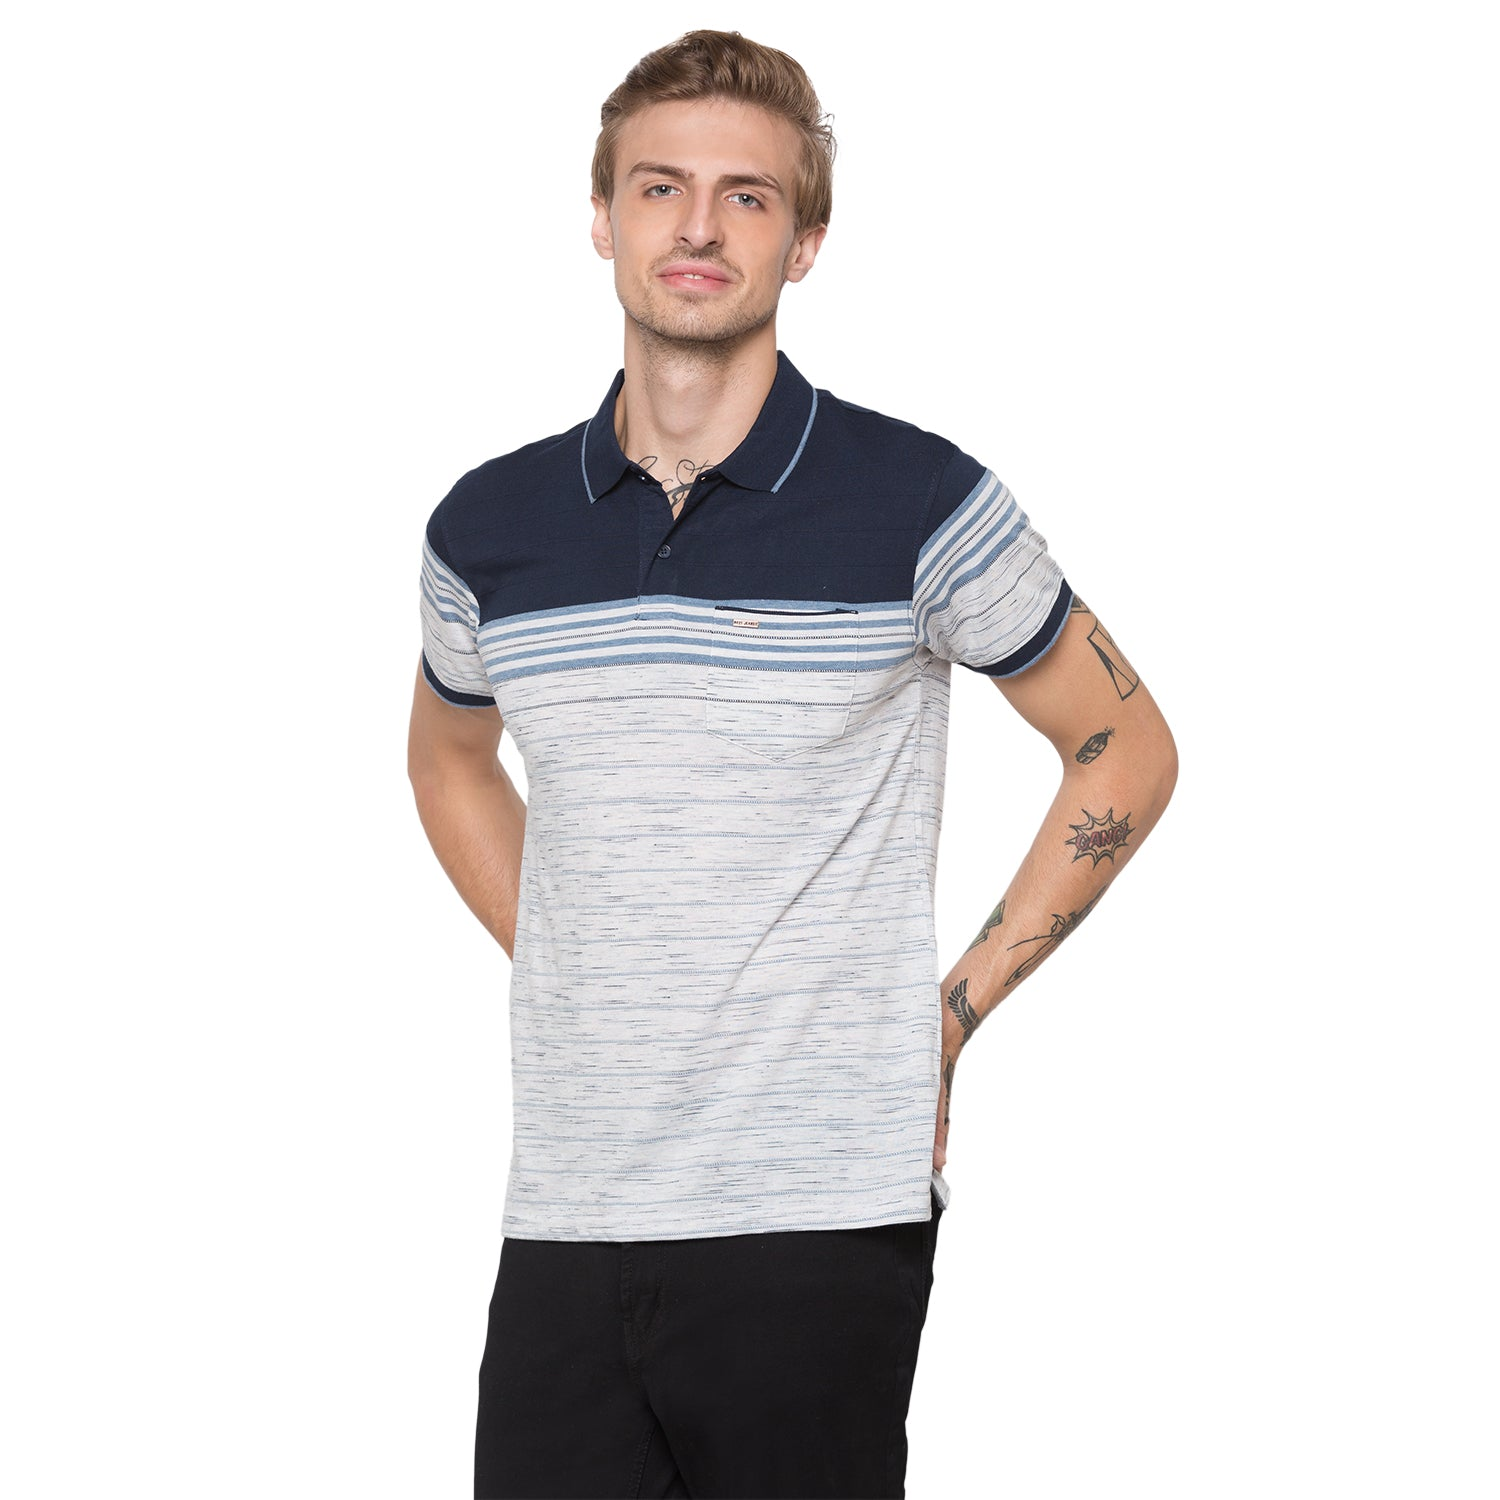 Globus Navy Blue Striped Polo T-Shirt-1